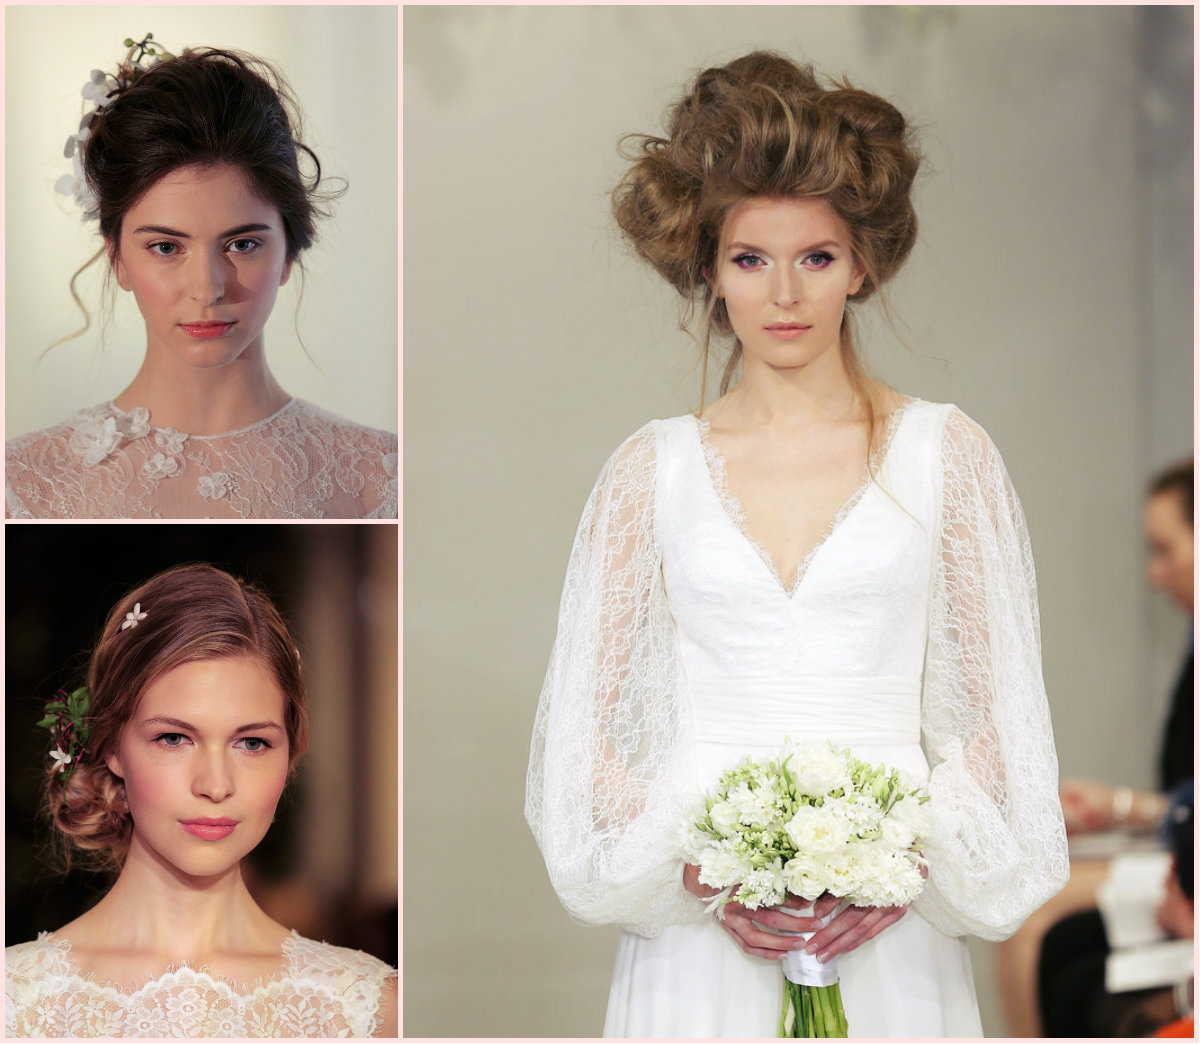 Runways: Wedding Hairstyles 2016 Spring | Hairstyles 2017, Hair ...